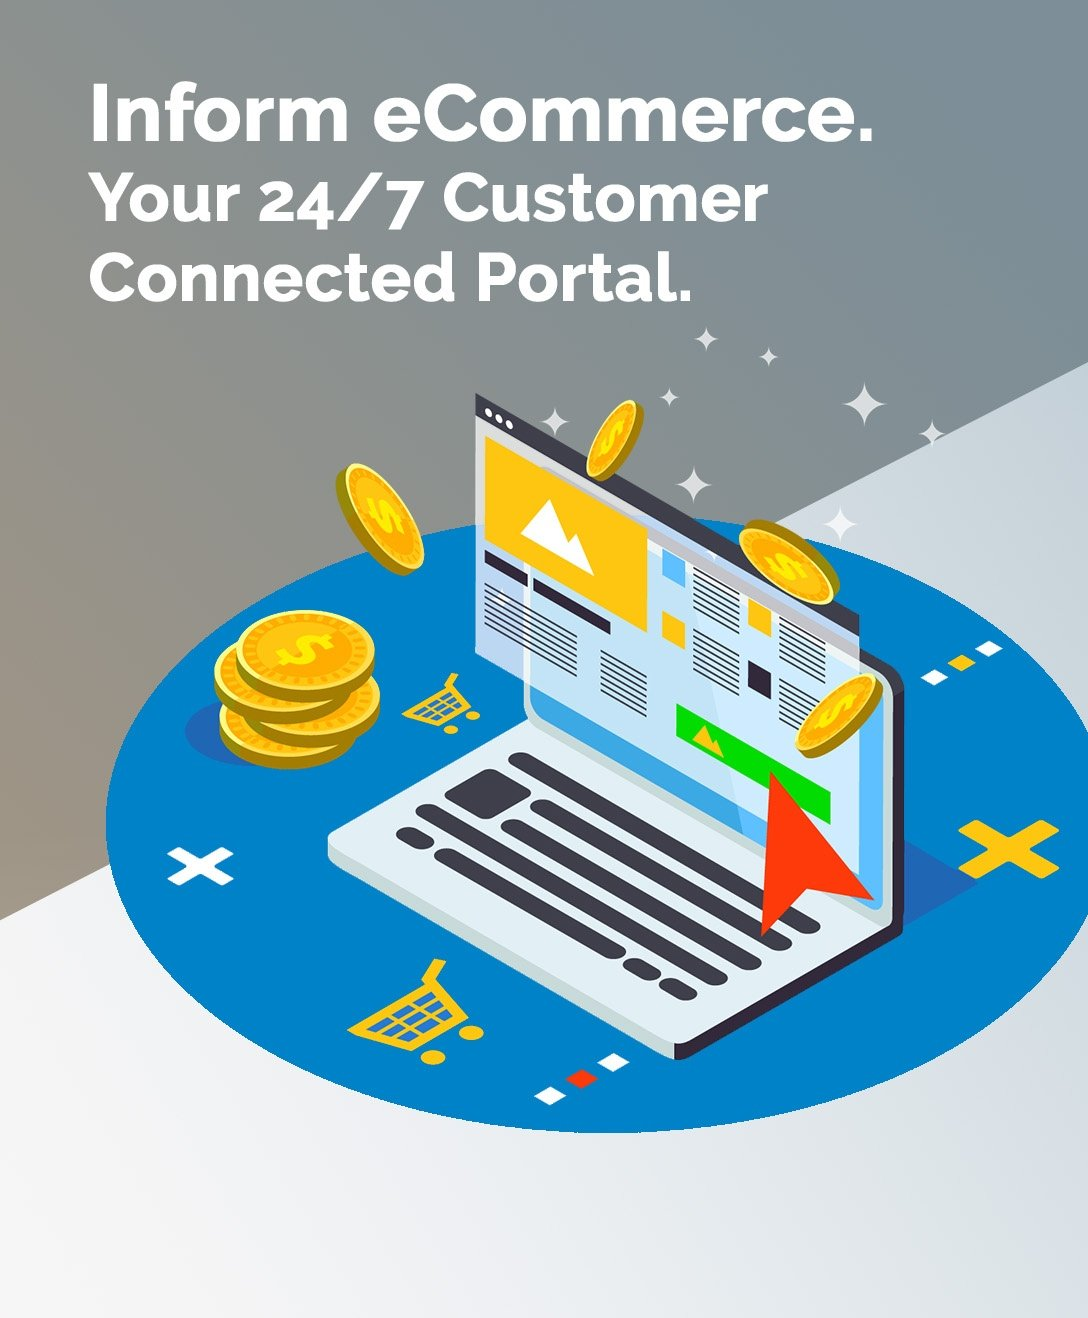 Inform ecommerce. Your 24-7 customer connected portal.